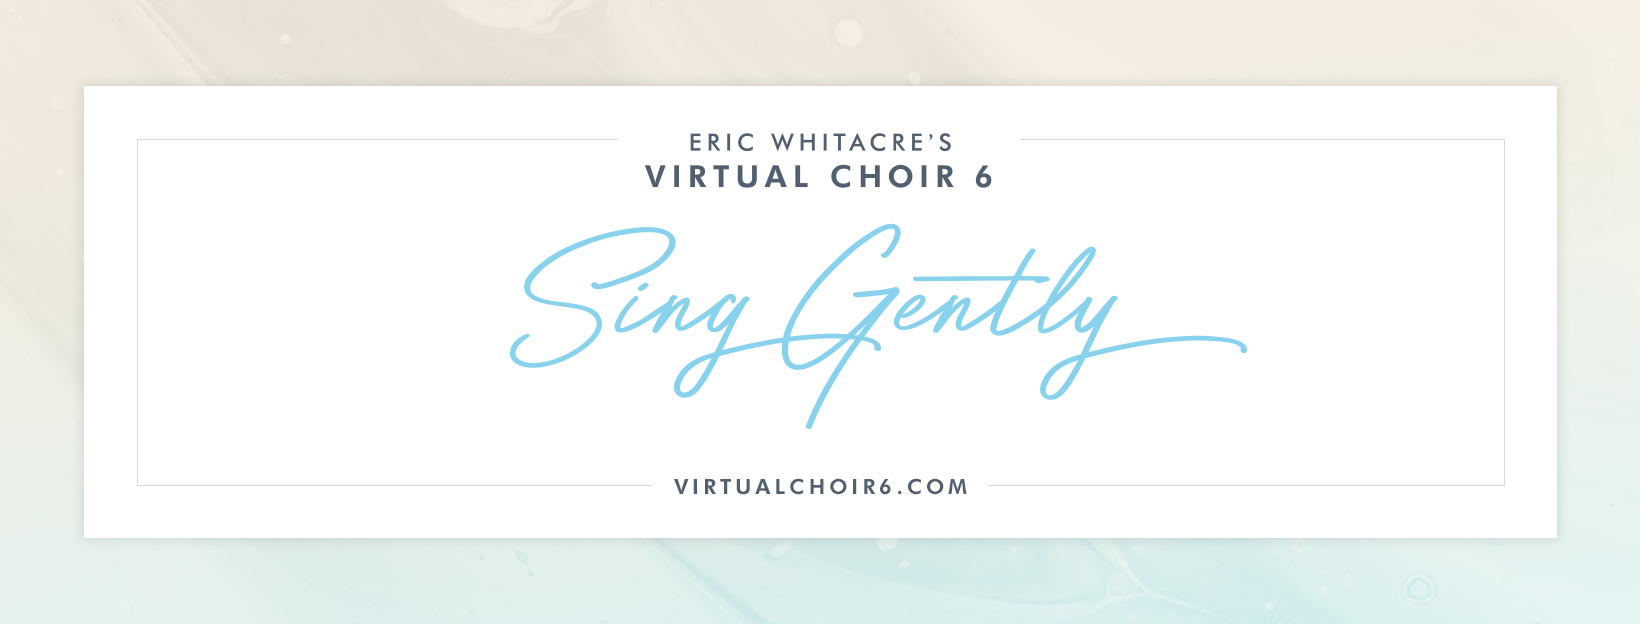 Eric Whitacre's Virtual Choir Sing Gently